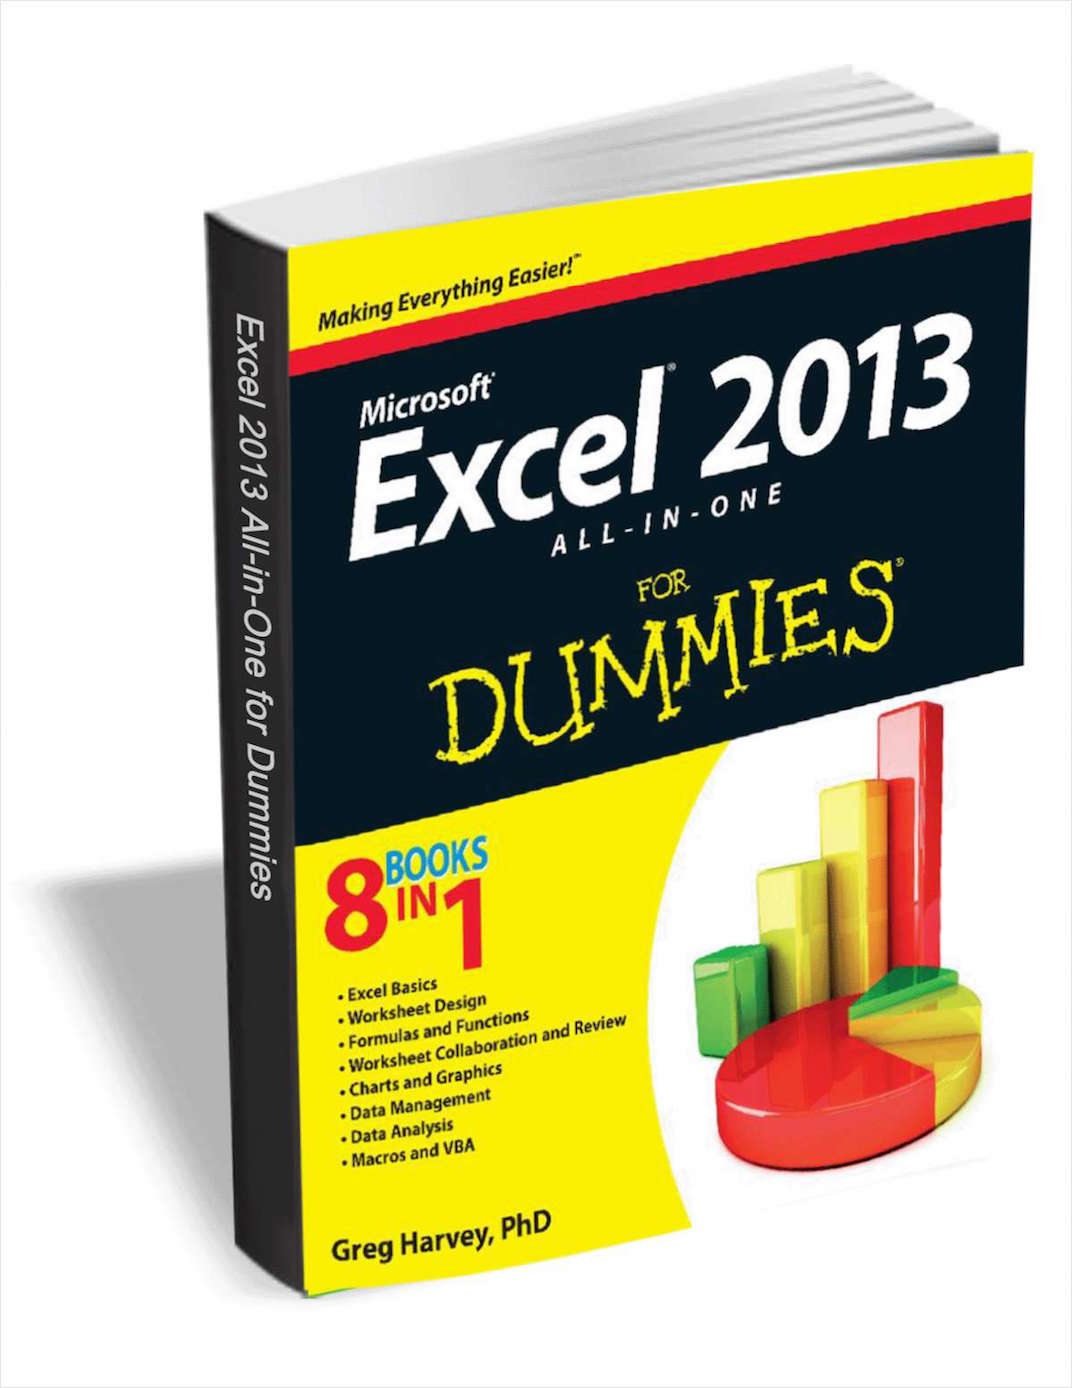 download excel 2013 all in one for dummies 8 books in 1 for free